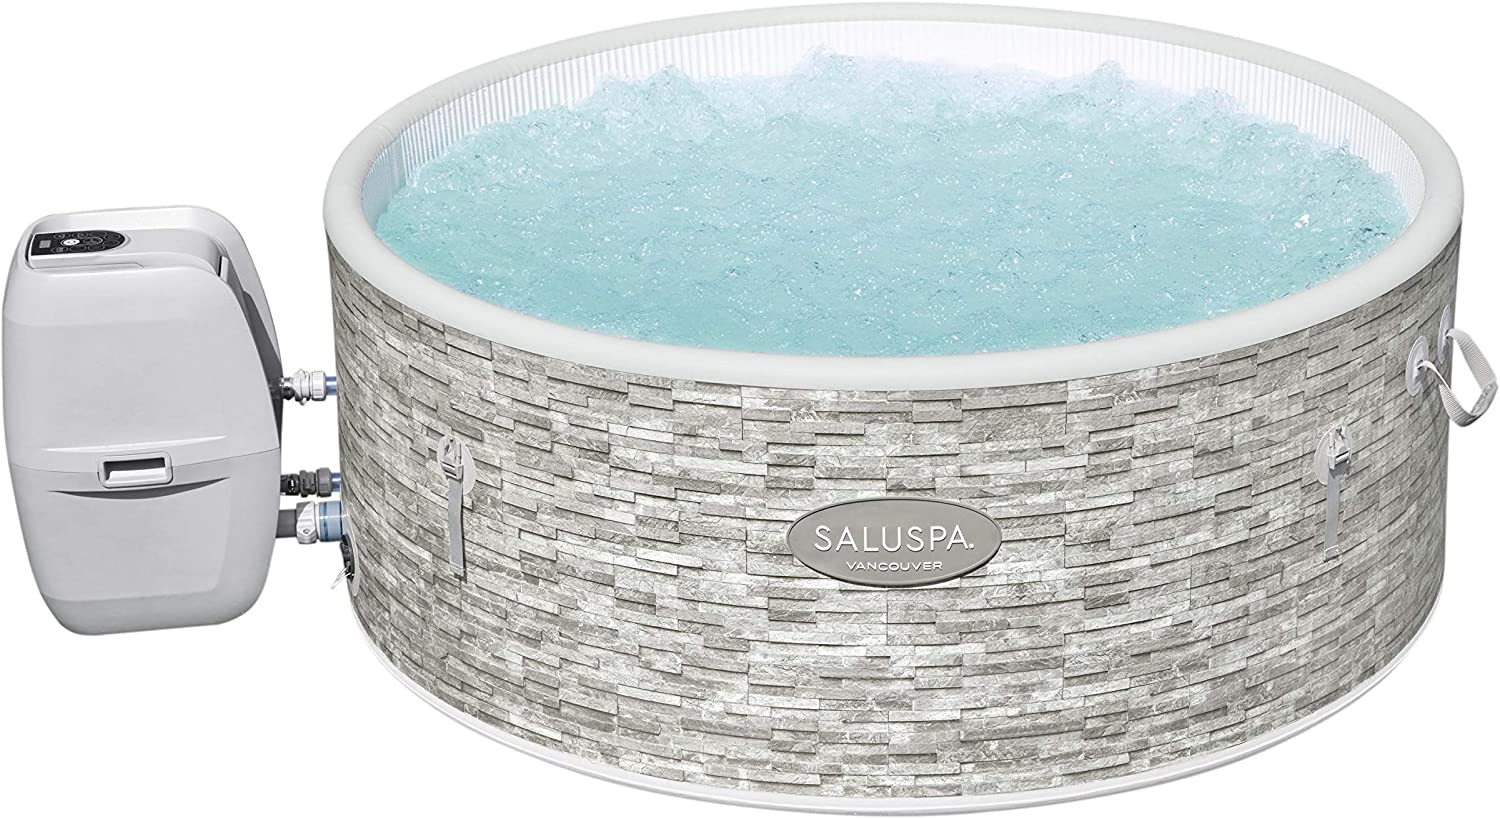 Inflatable Hot Tubs Are the Perfect Outdoor Spa Tub